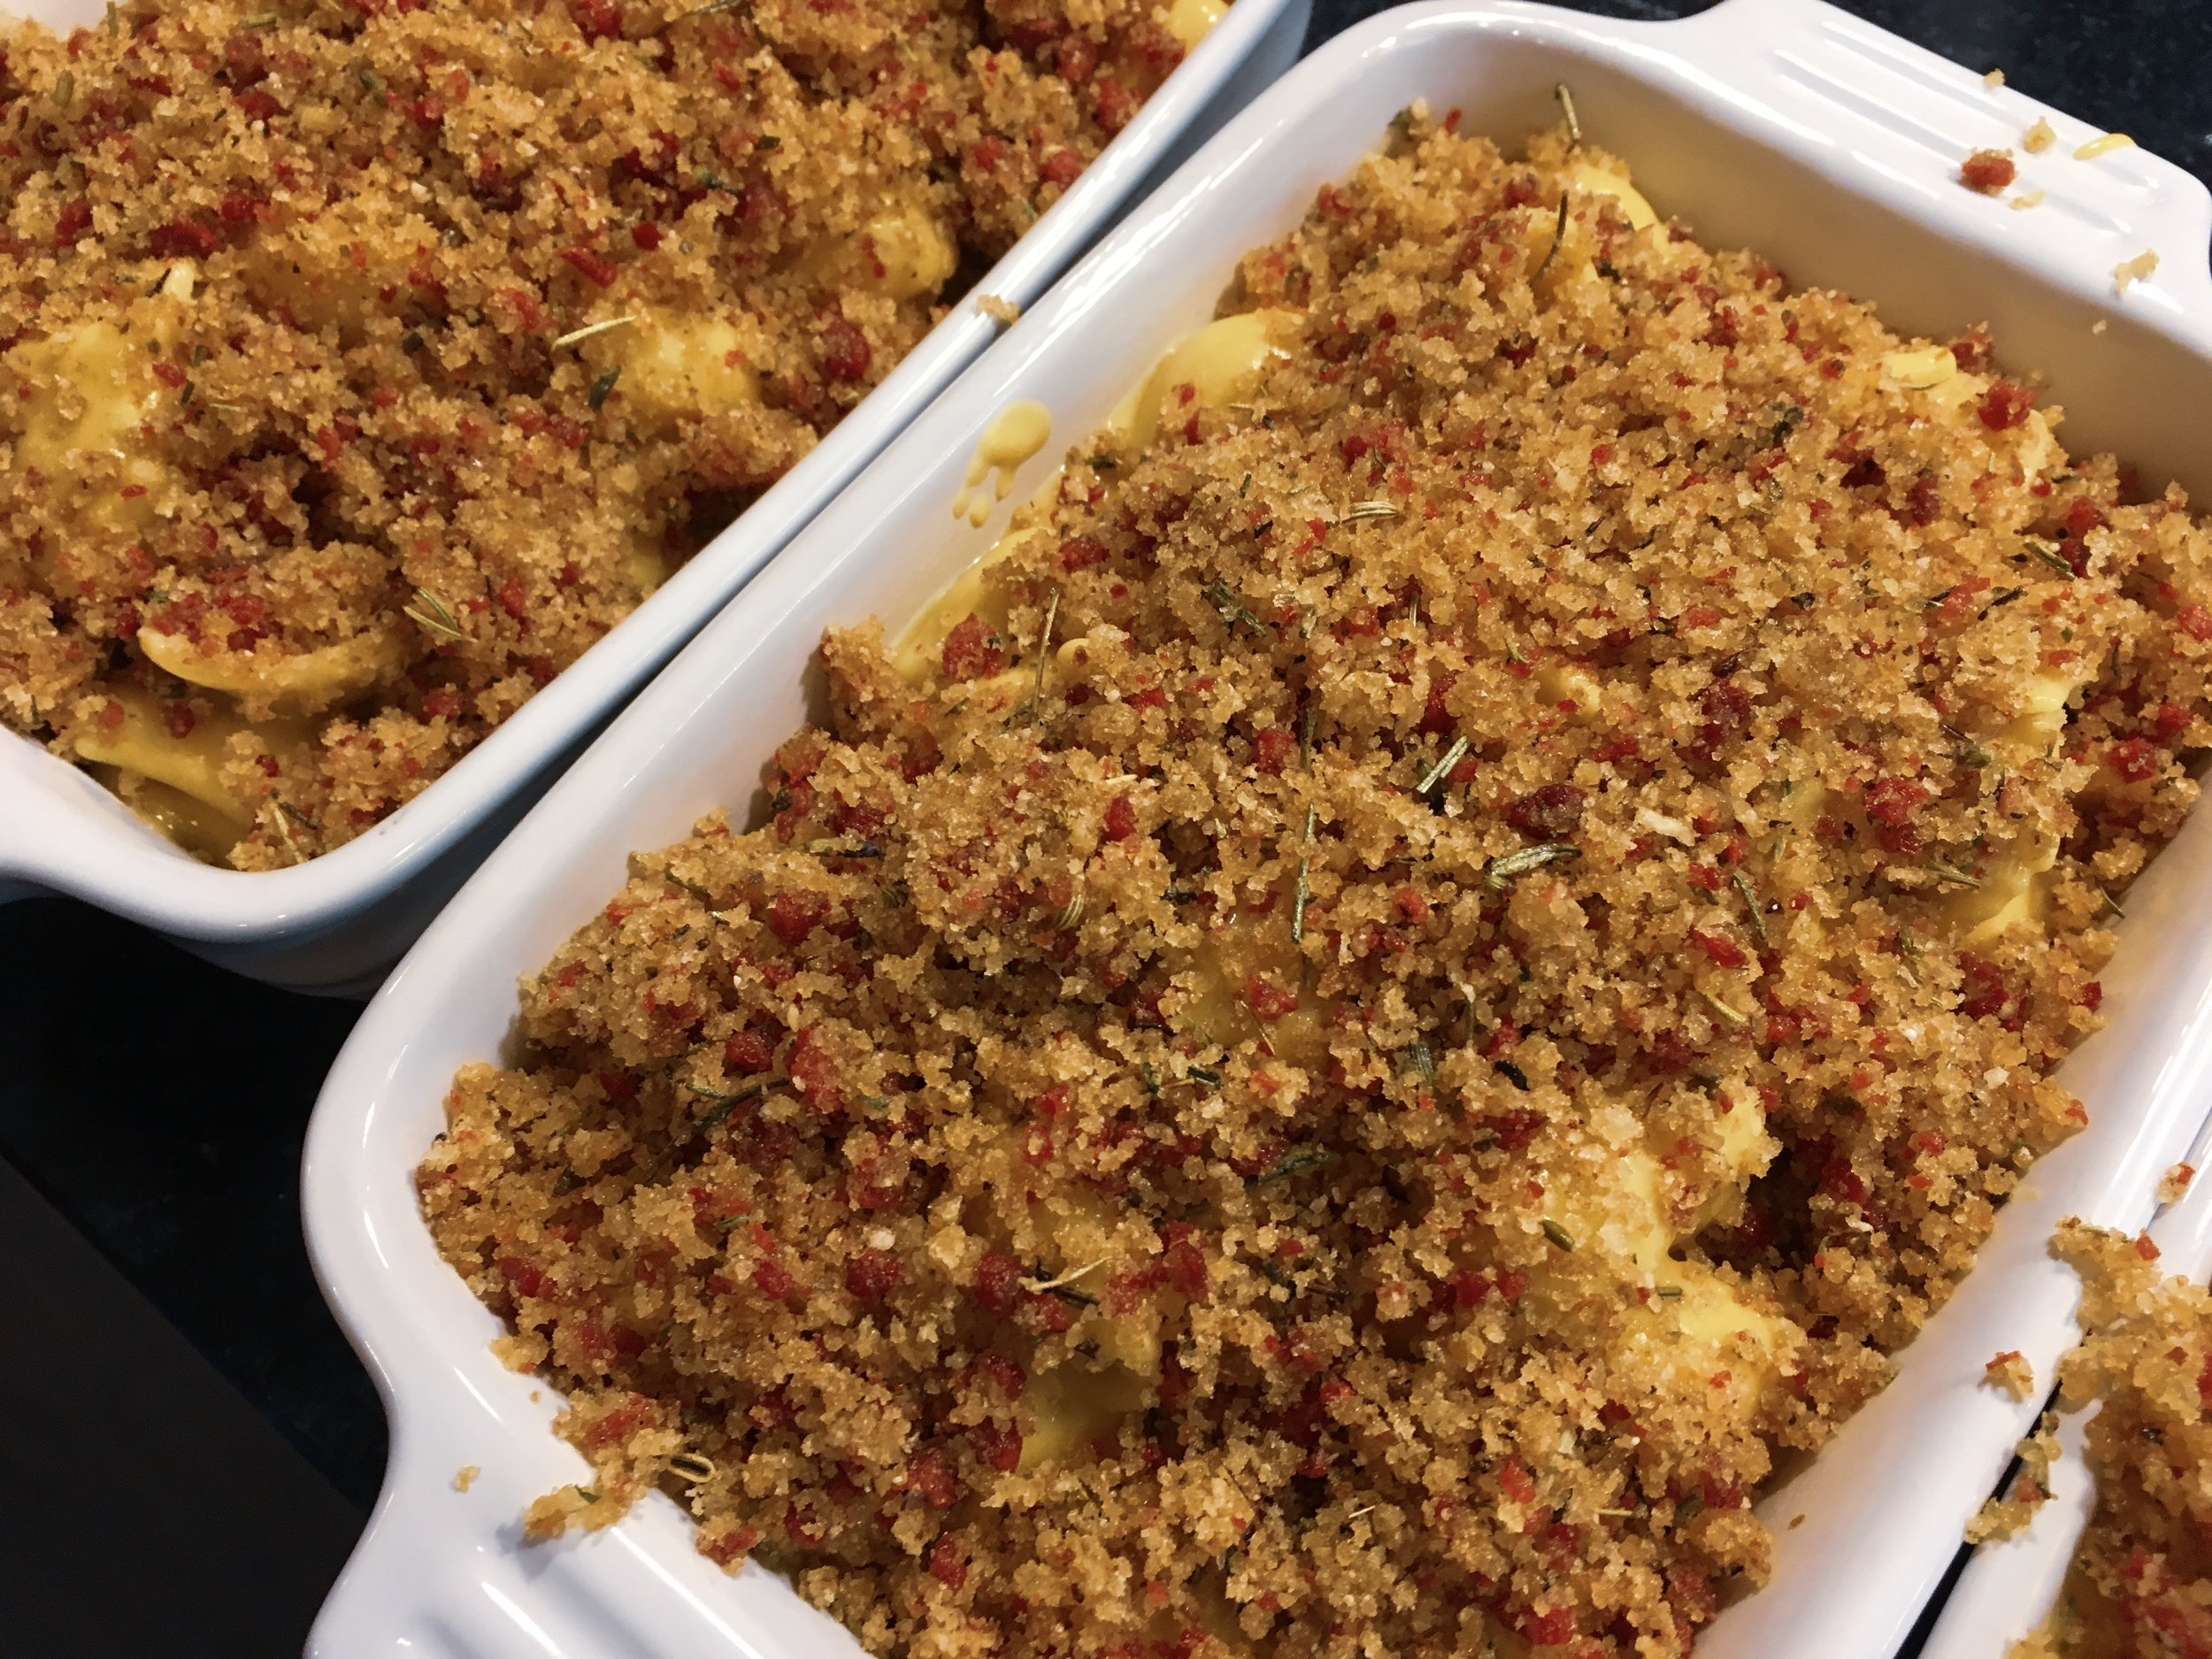 Mac and cheese in dishes topped with breadcrumbs